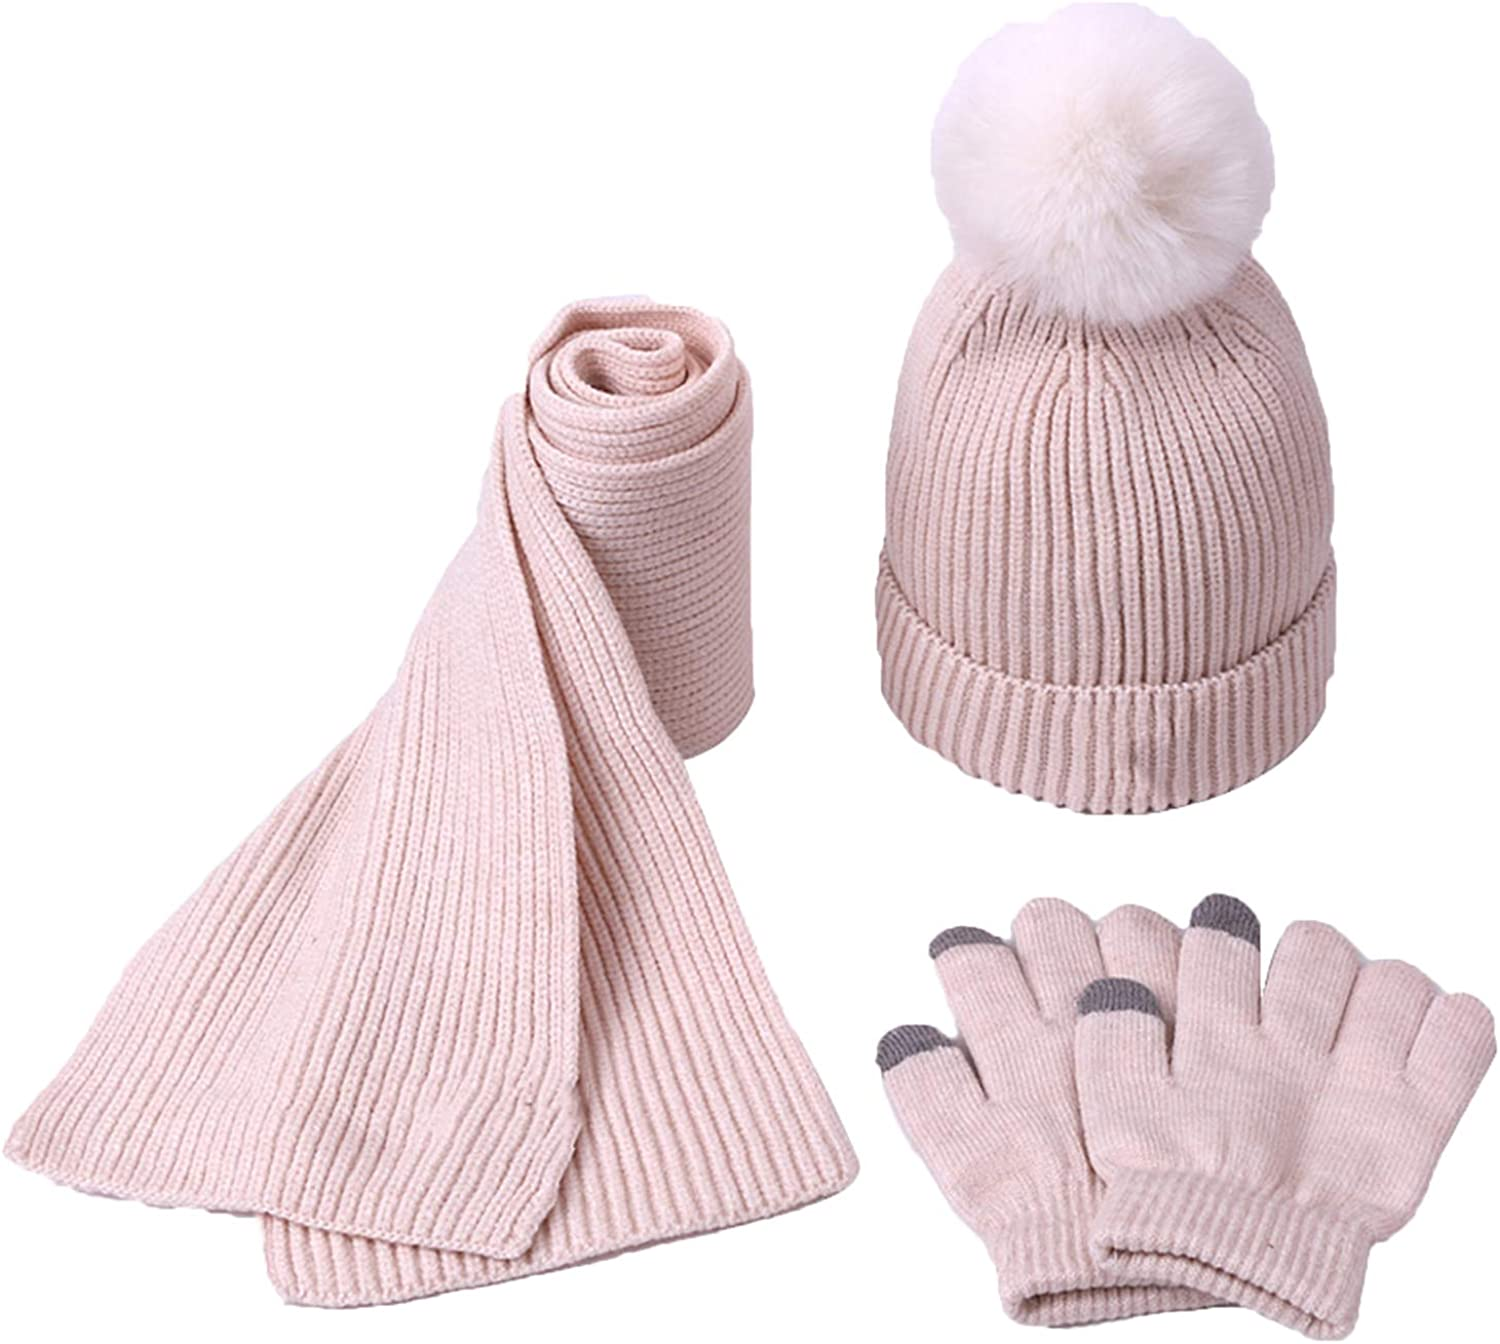 Children Winter Hat Scarf Gloves Set, Super Warm Knit Cap with Pompom and Plush Lined, for Boys/Girls Outdoor Activity Crochet Cap,Beige,M